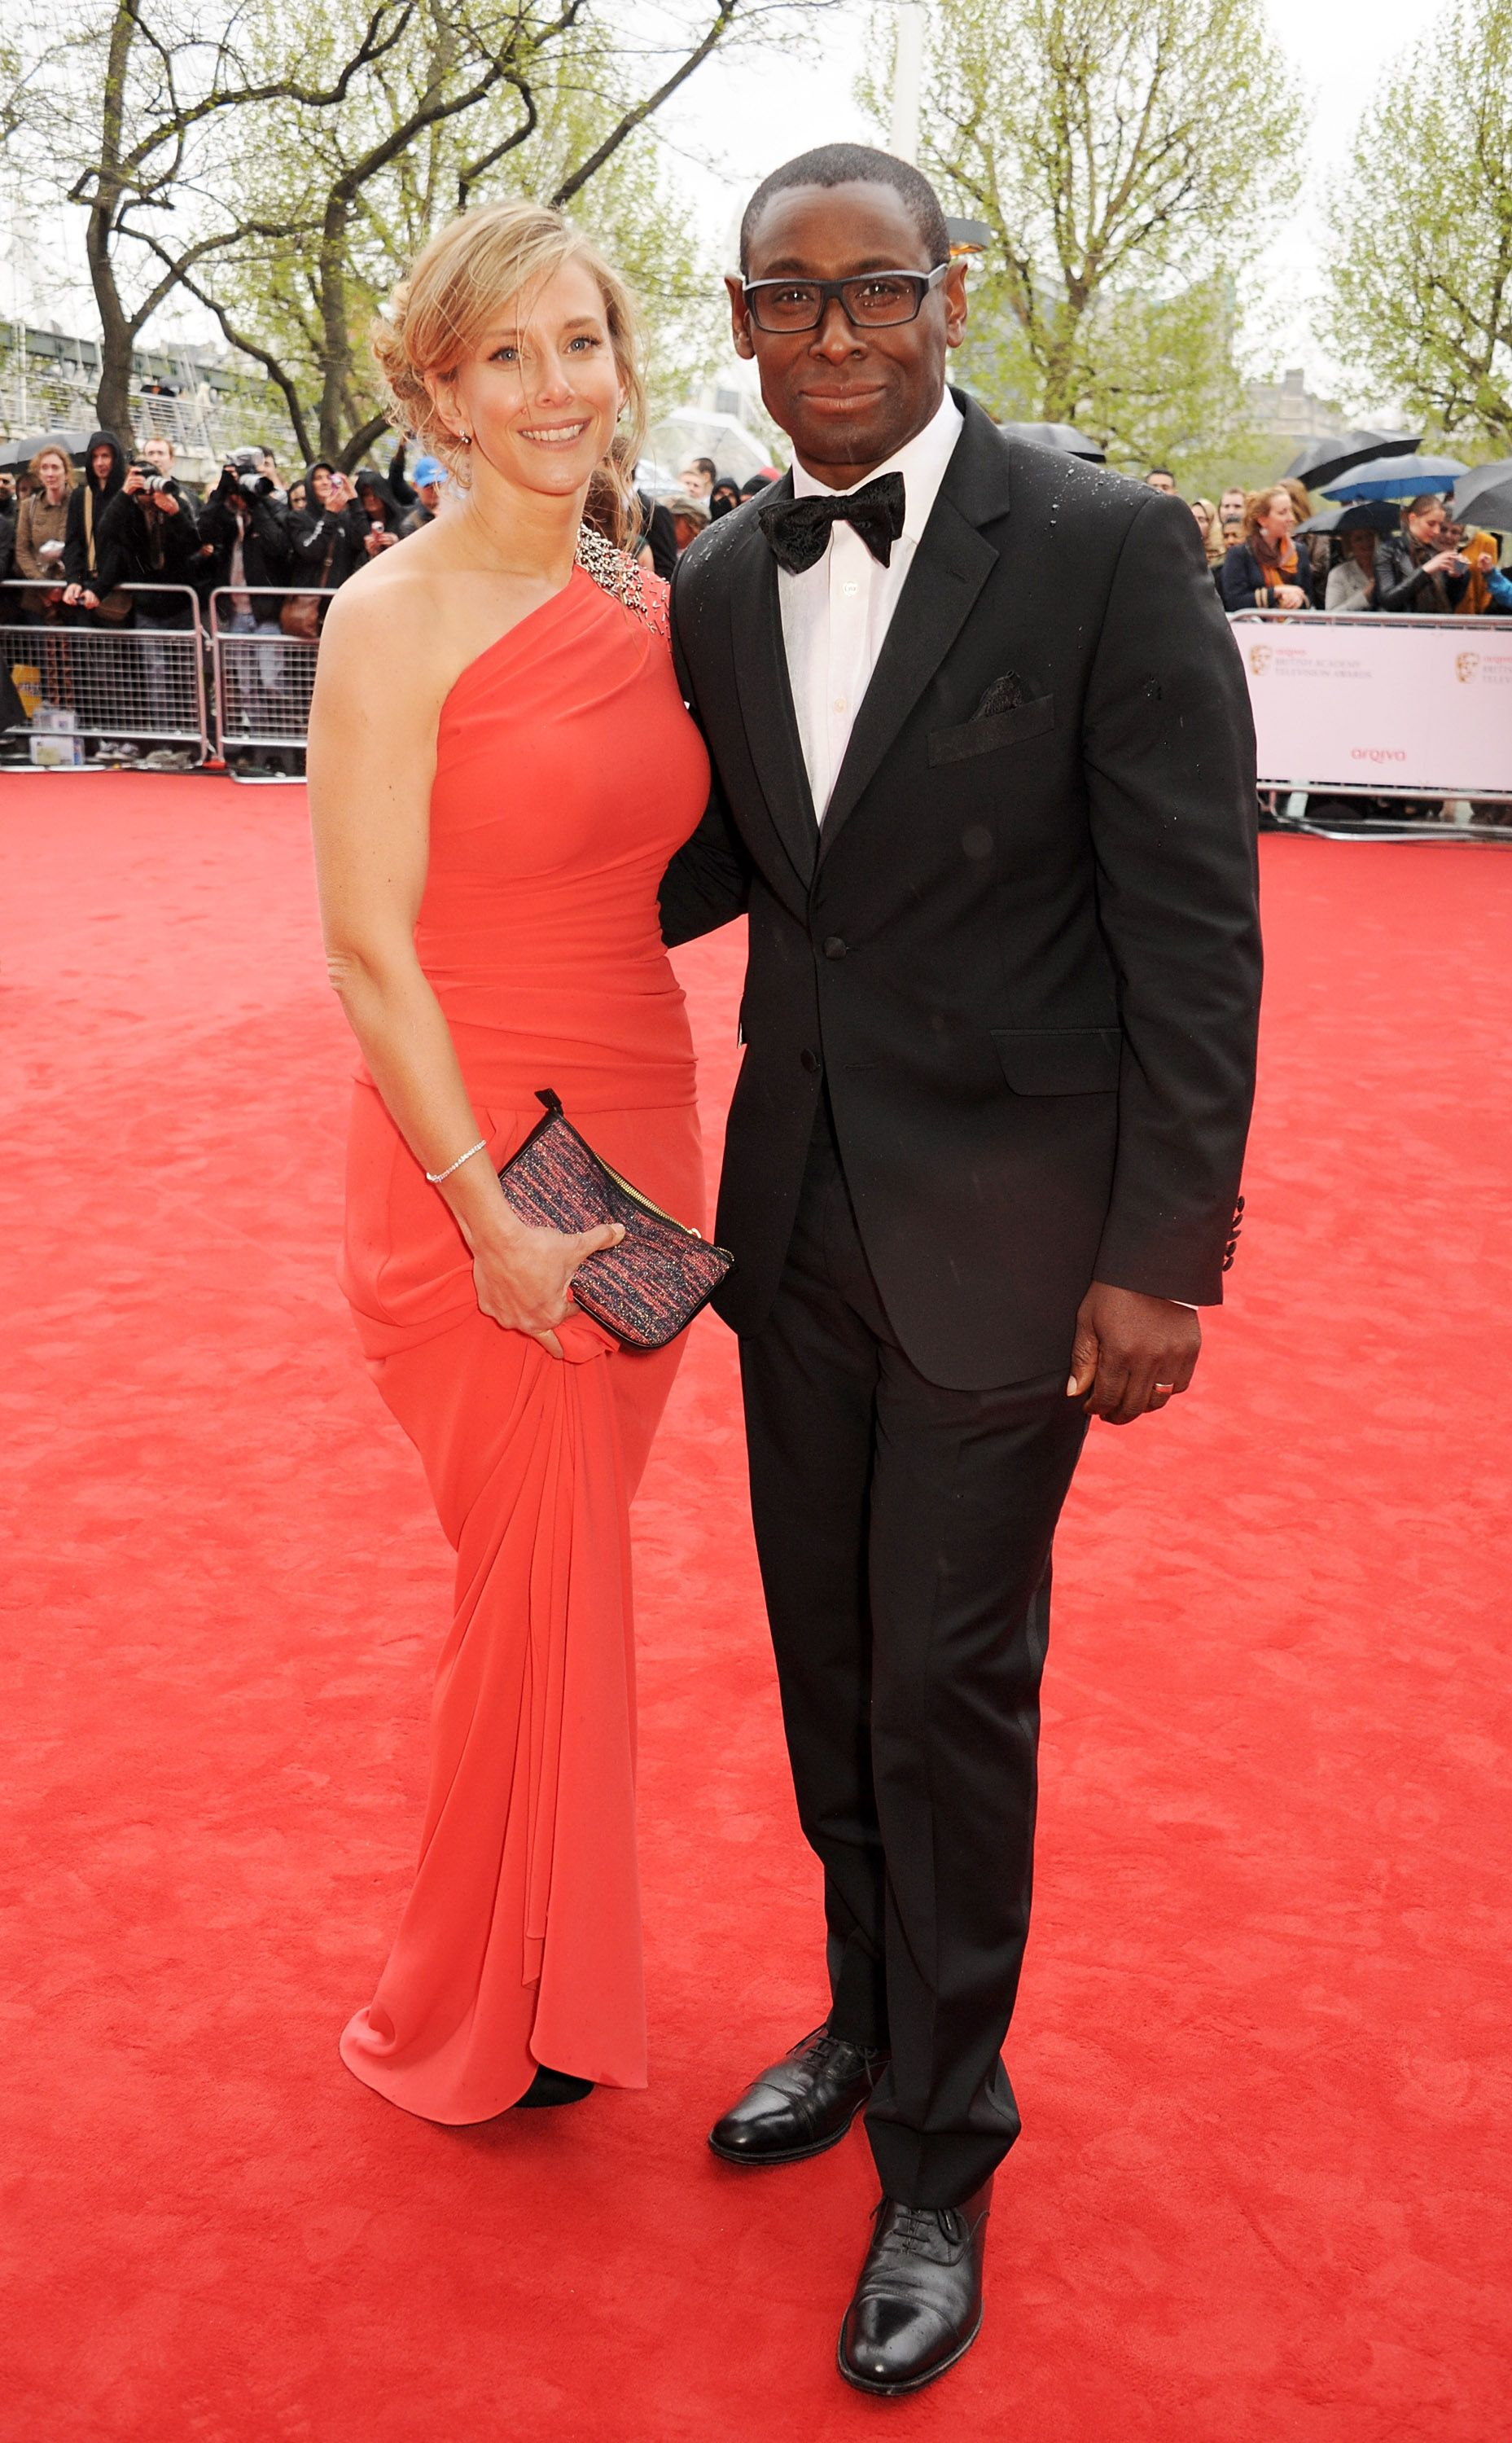 David Harewood and wife Kirsty Hands at the Arqiva British Academy Television Awards 2013 at the Royal Festival Hall on May 12, 2013 | Photo: Getty Images